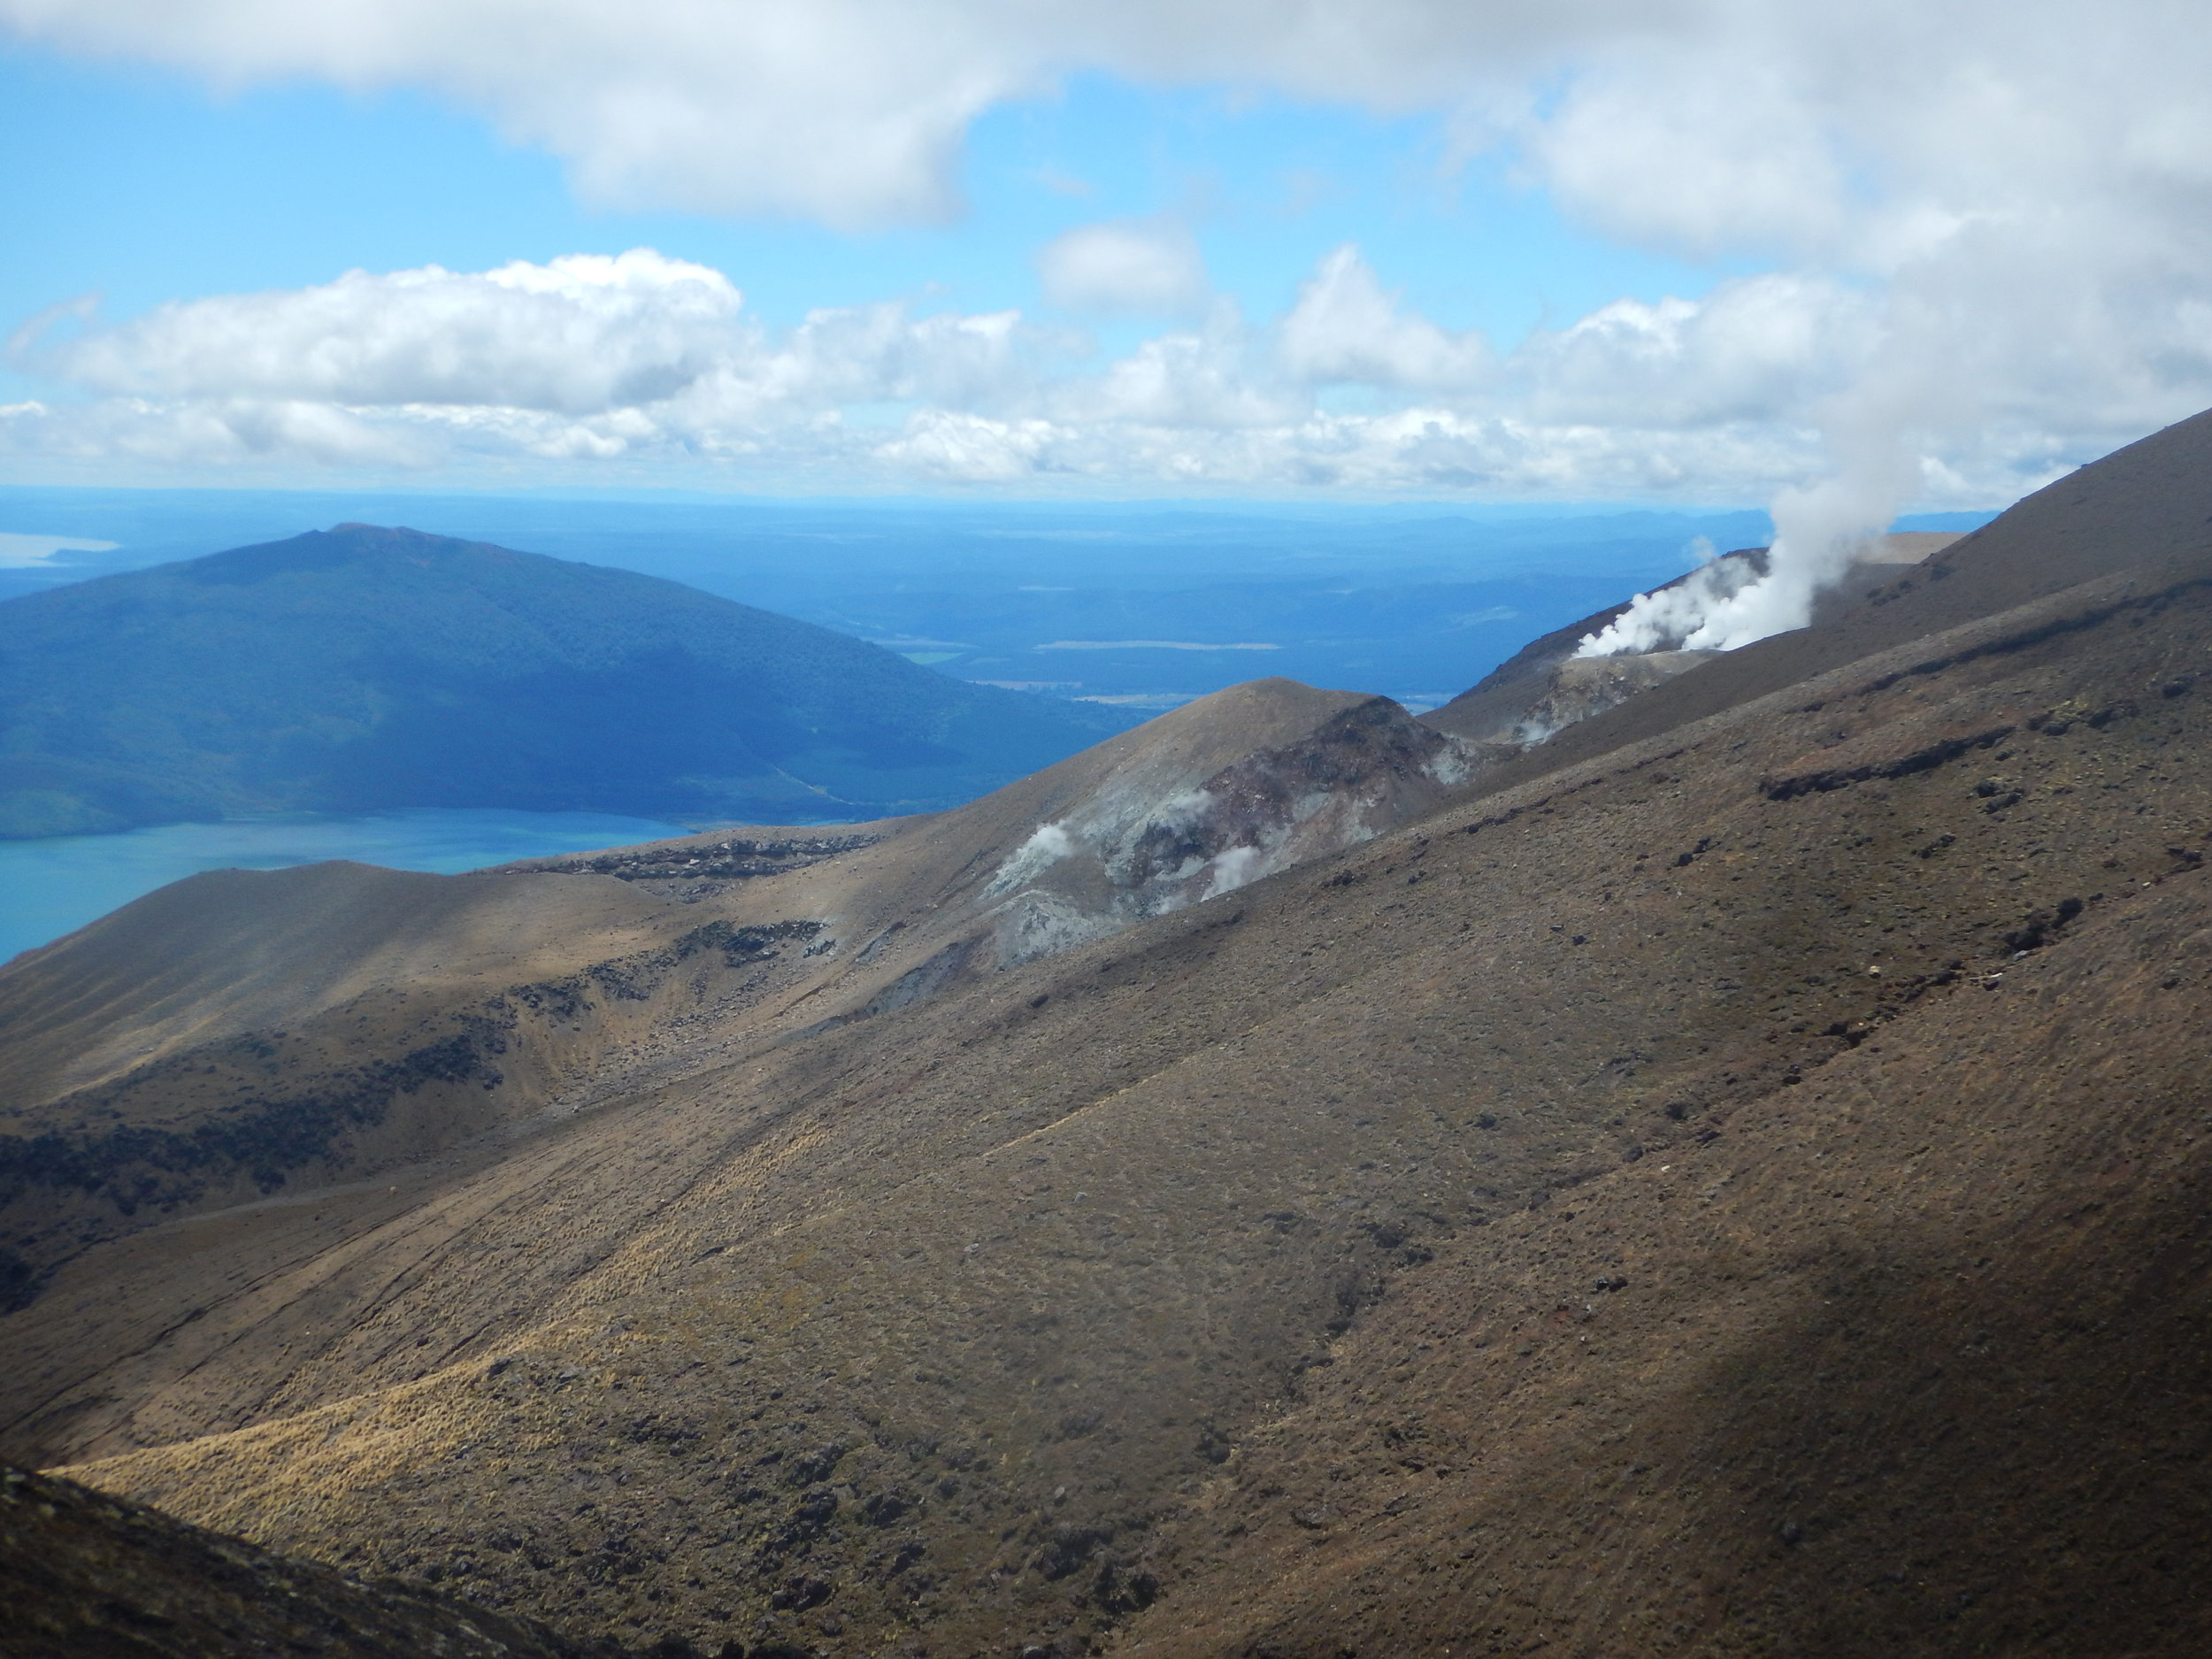 And the descent down to Ketetahi car park. It's a long windy walk down with a great view.